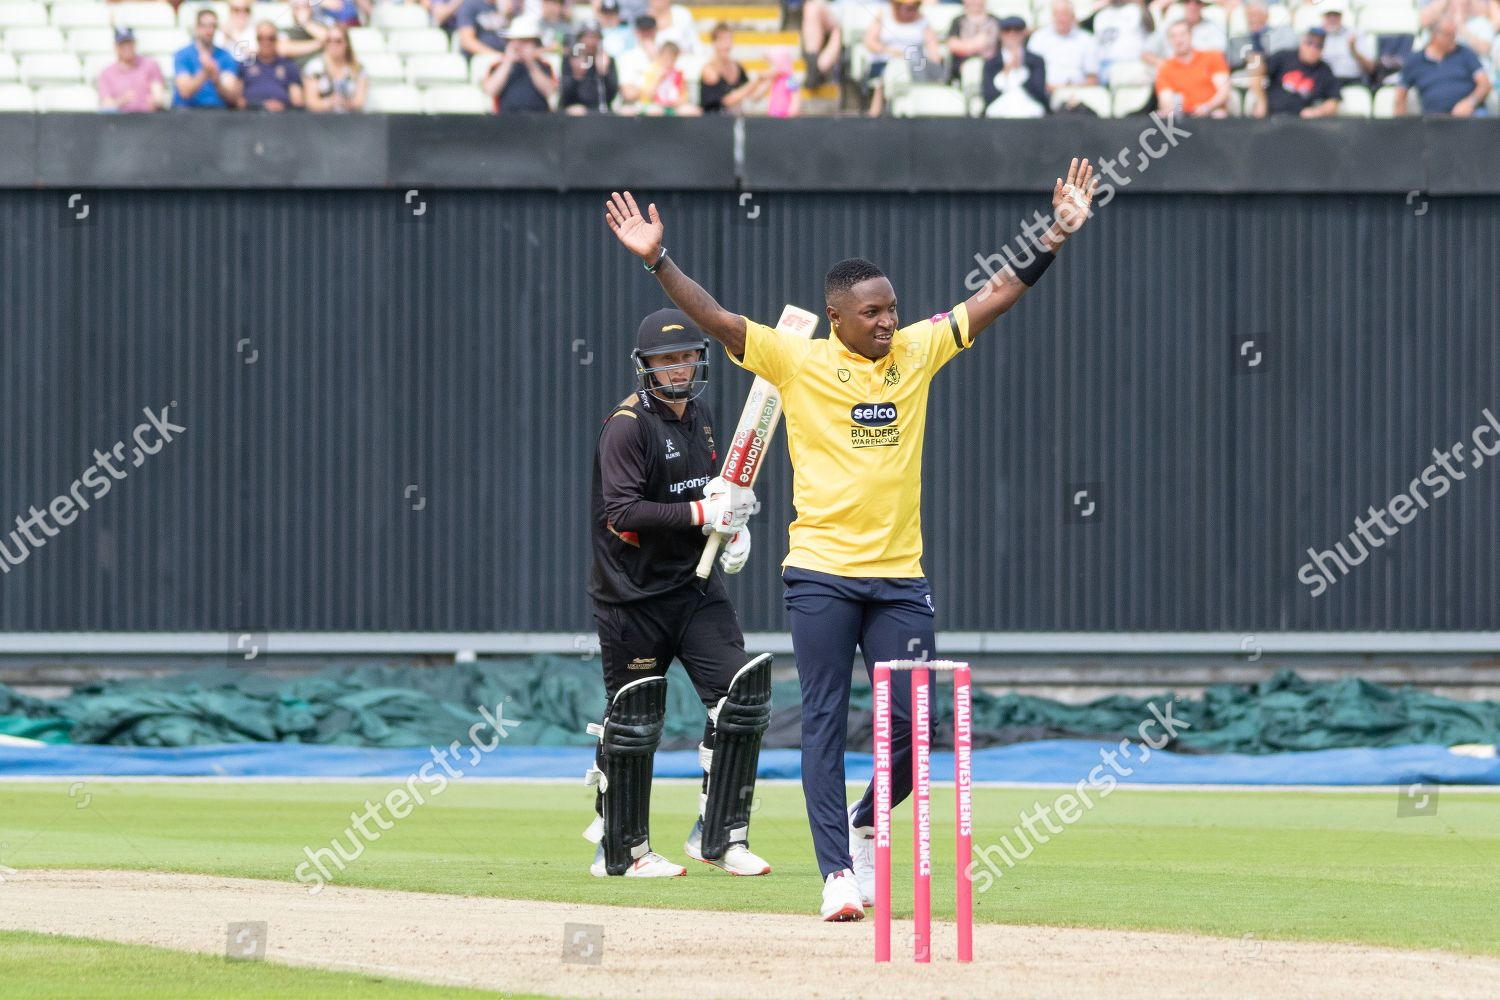 Wicket Fidel Edwards Claims His 4th Wicketduring Editorial